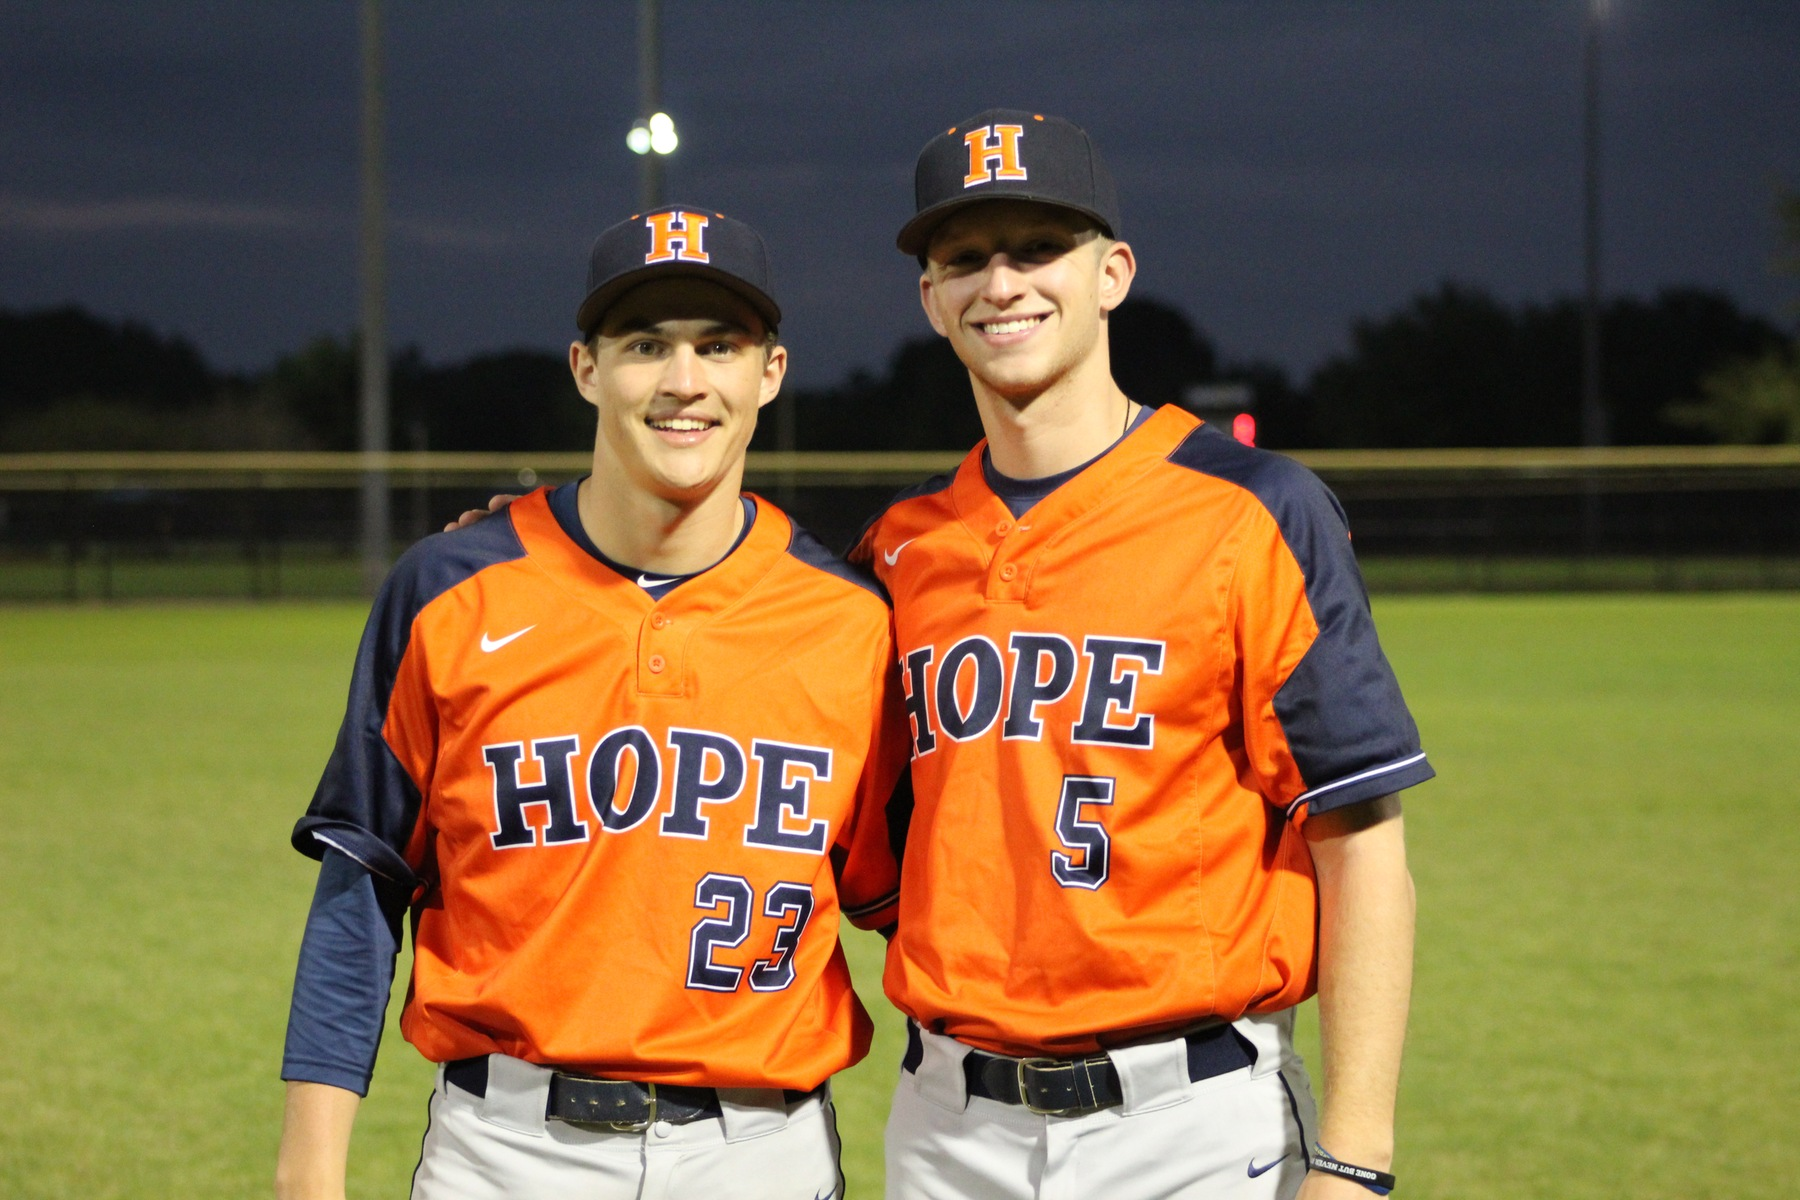 Keaton Hamilton and CJ Otteman pose together for a picture at a baseball field